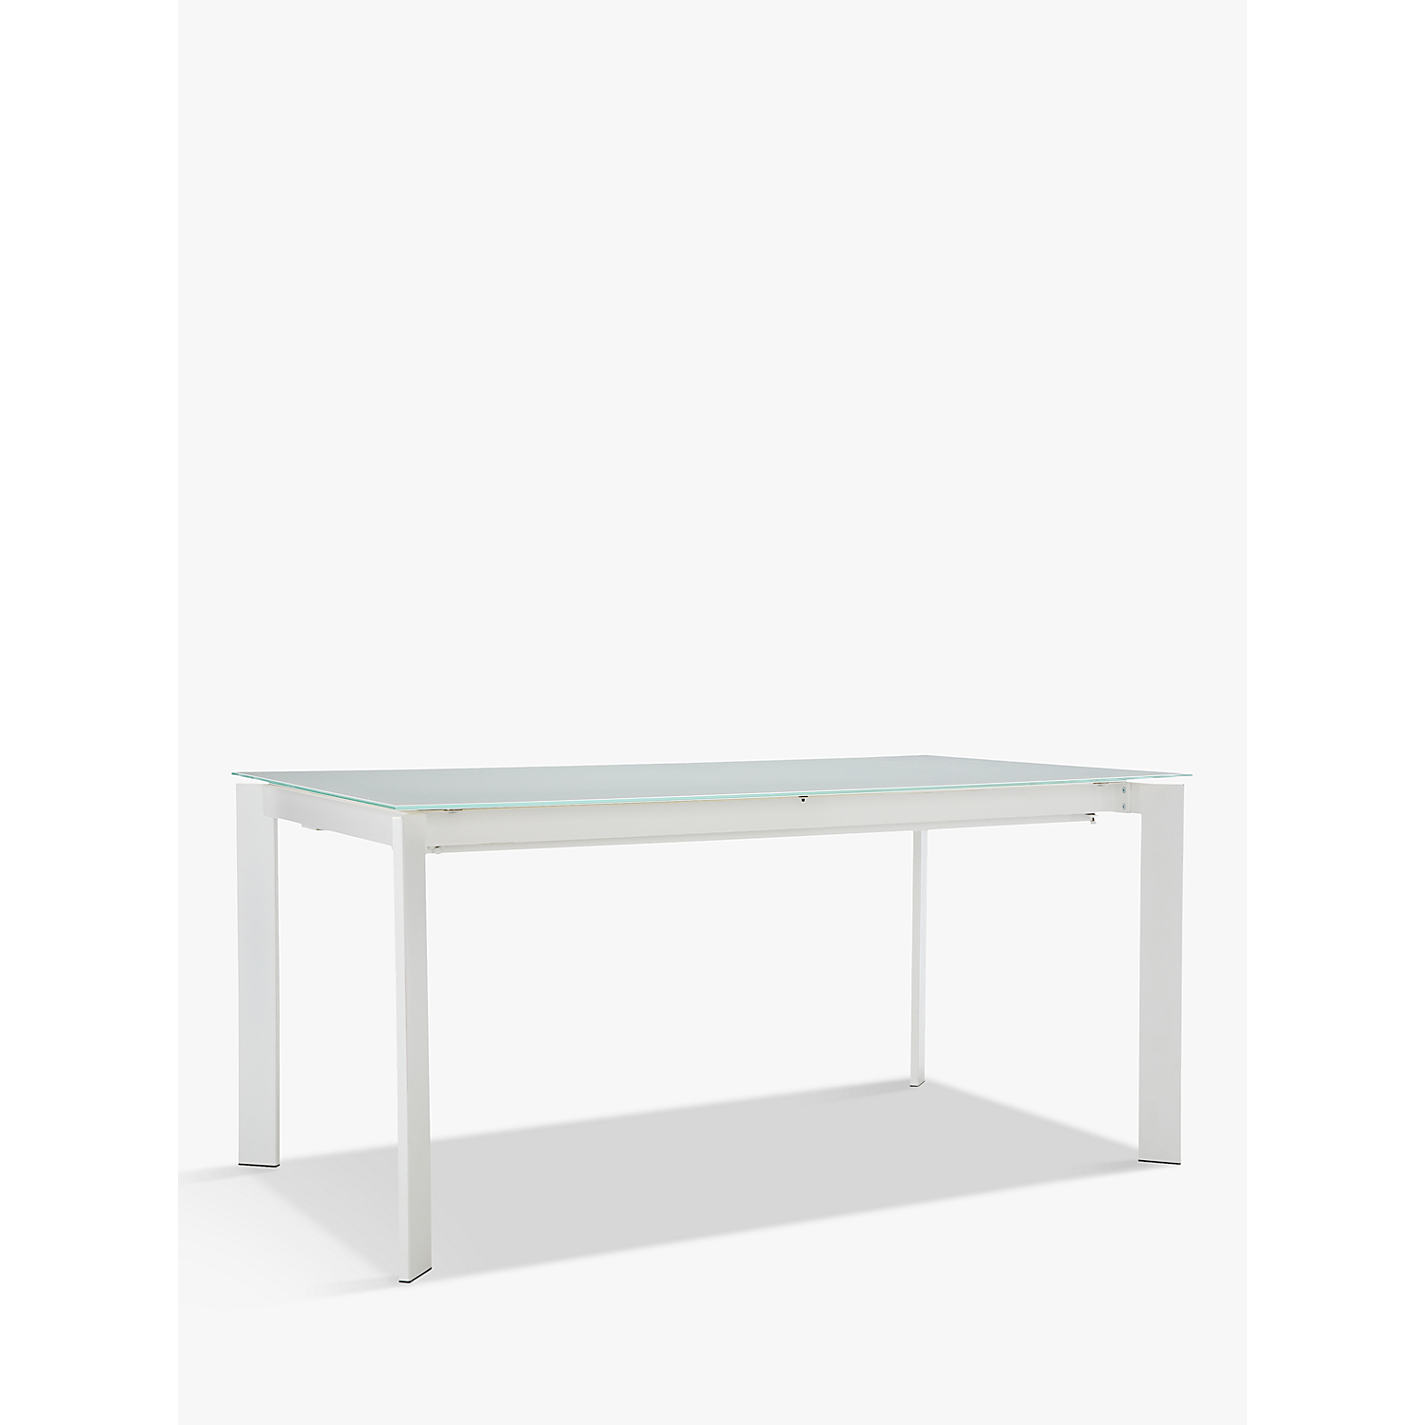 Buy John Lewis Odyssey 6 10 Seater Glass Top Extending Dining Table Online At Johnlewis